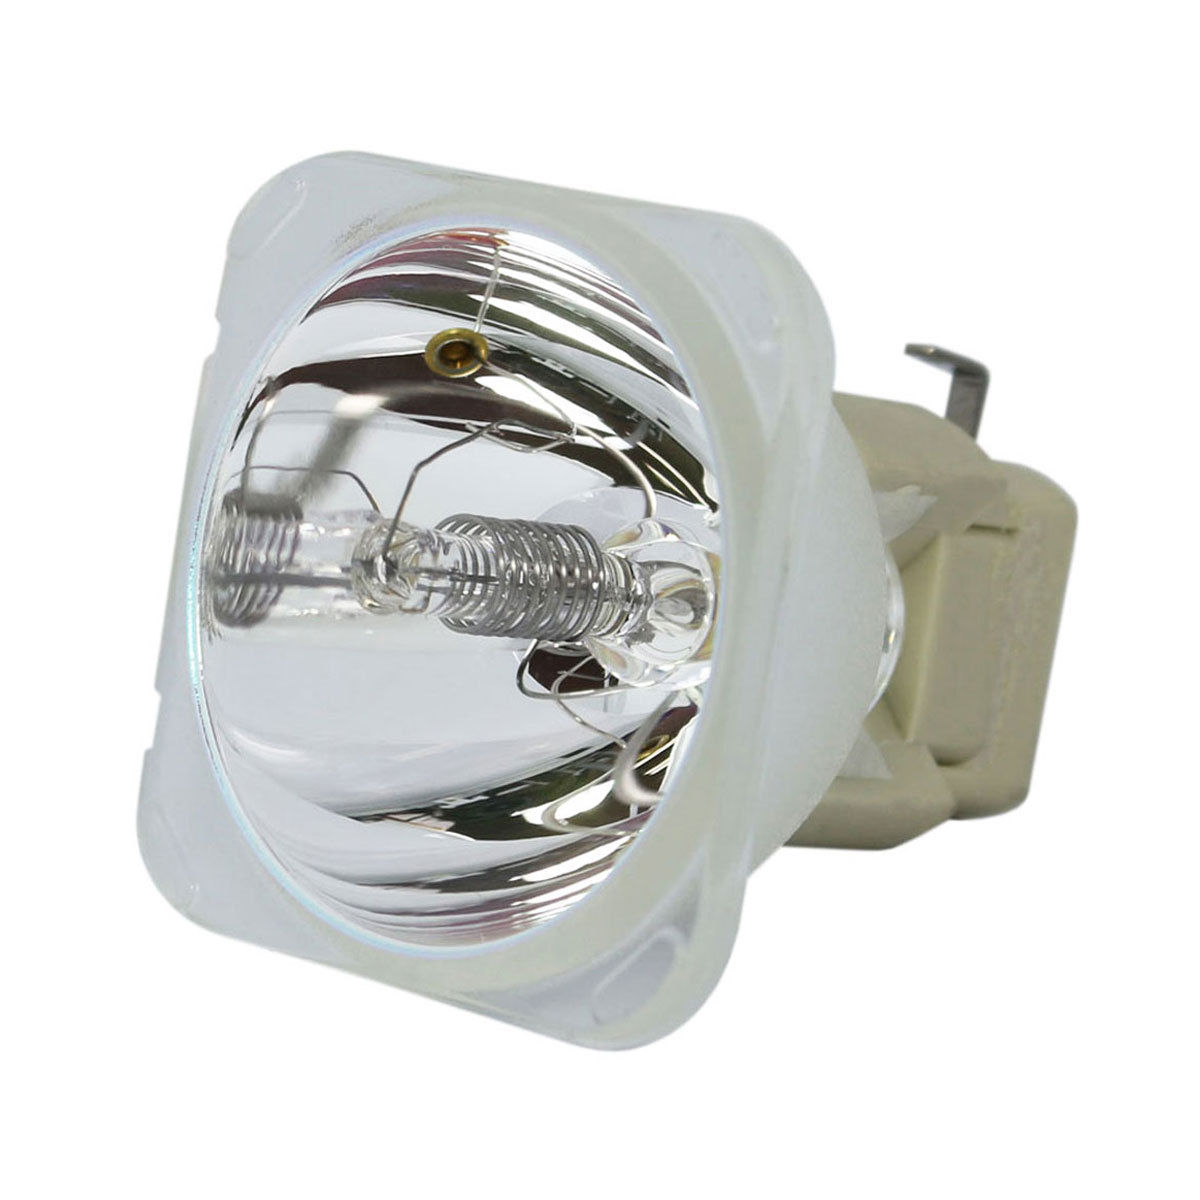 Compatible Bare Bulb RLC-026 RLC026 for VIEWSONIC PJ508D PJ568D PJ588D Projector Lamp Bulb without housing like hi 6